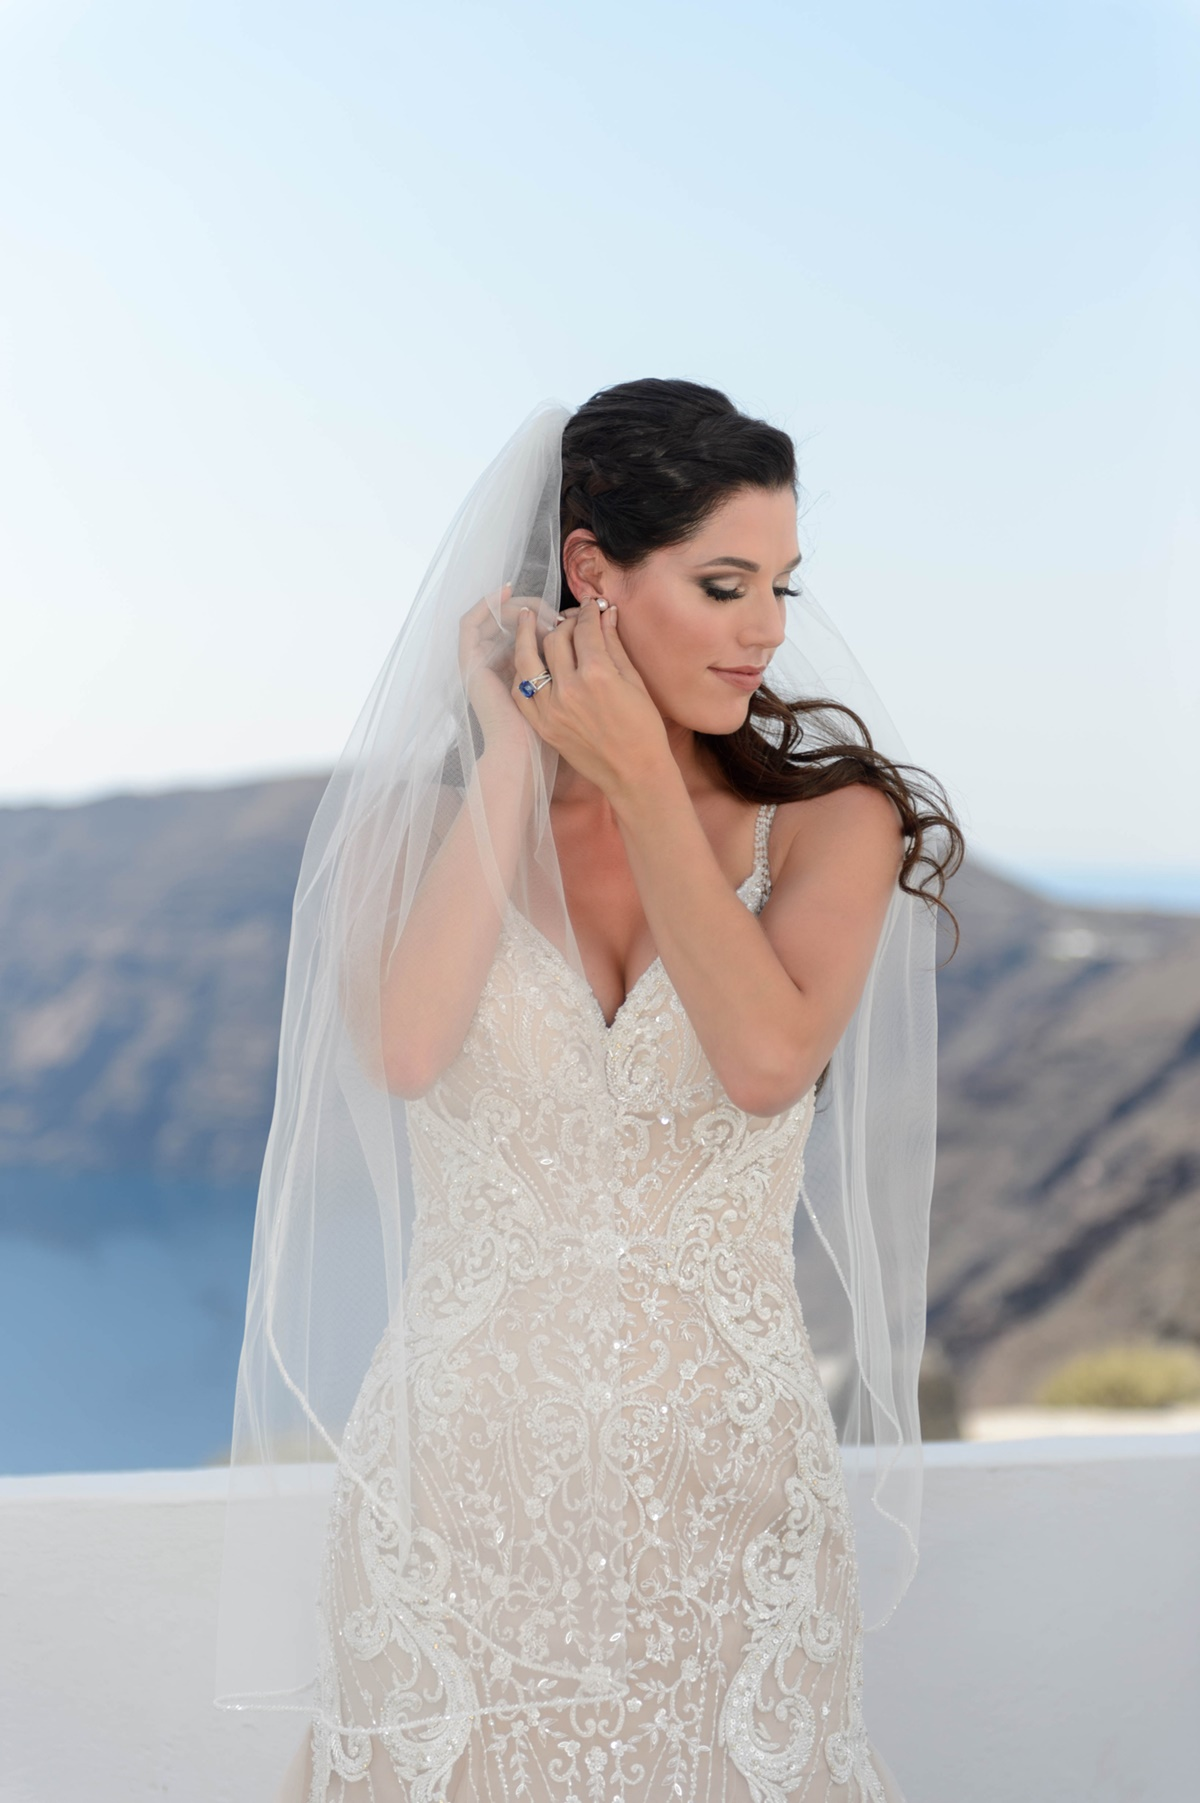 Dreamy summer wedding in Santorini